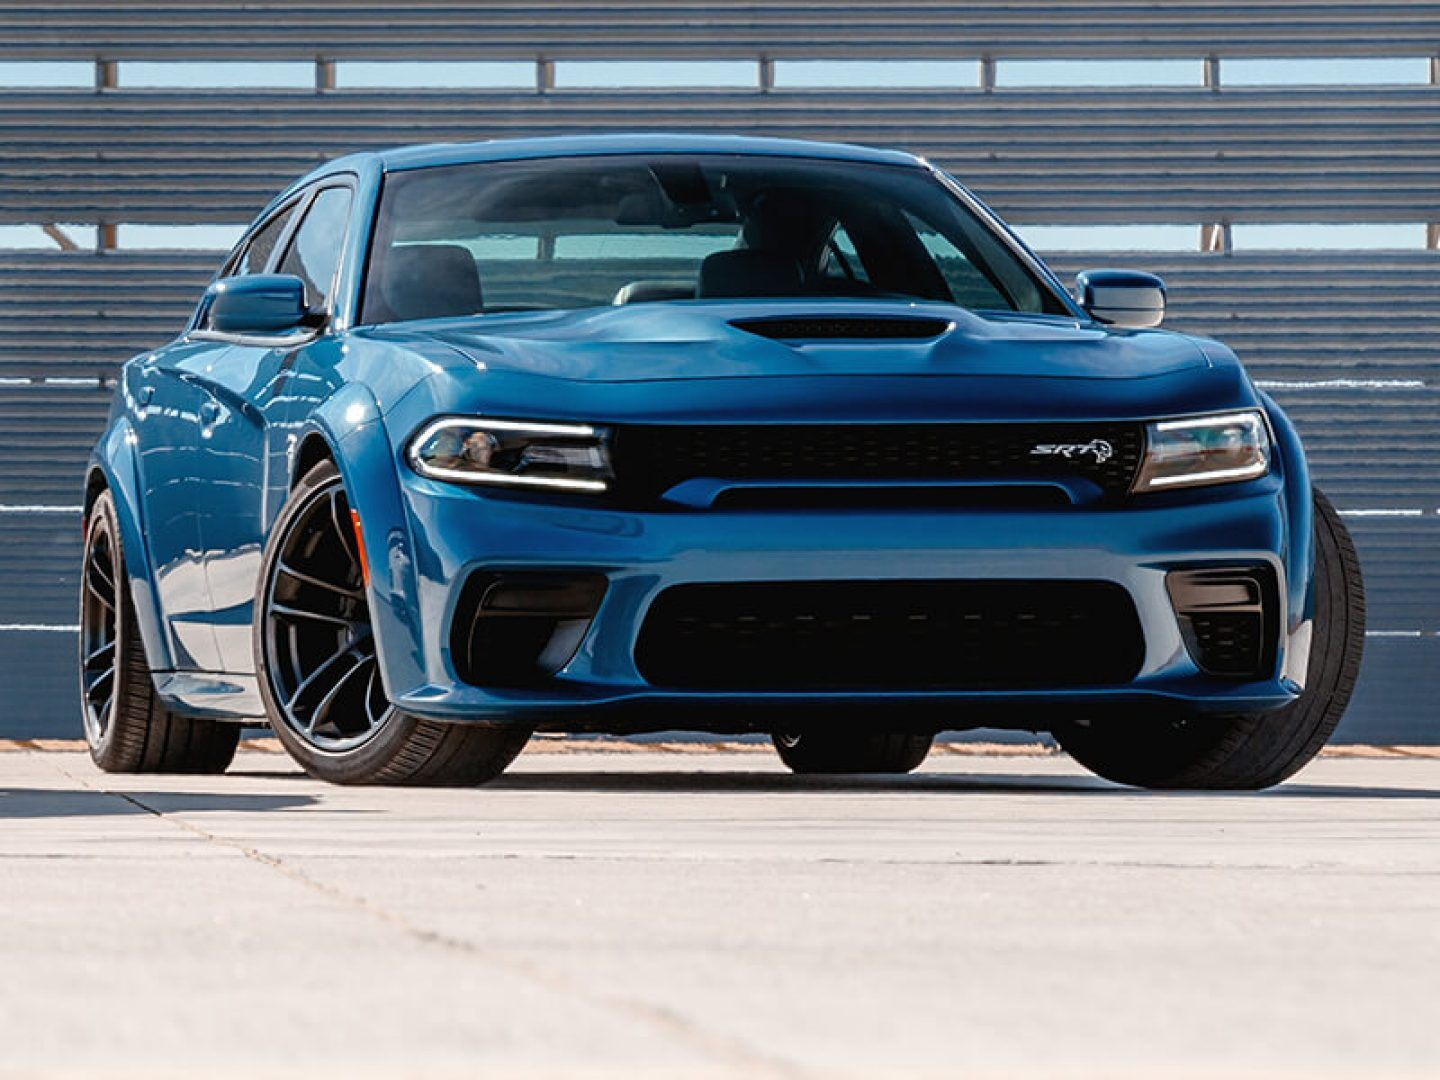 2020 Dodge Charger Srt 8 Price, Design and Review